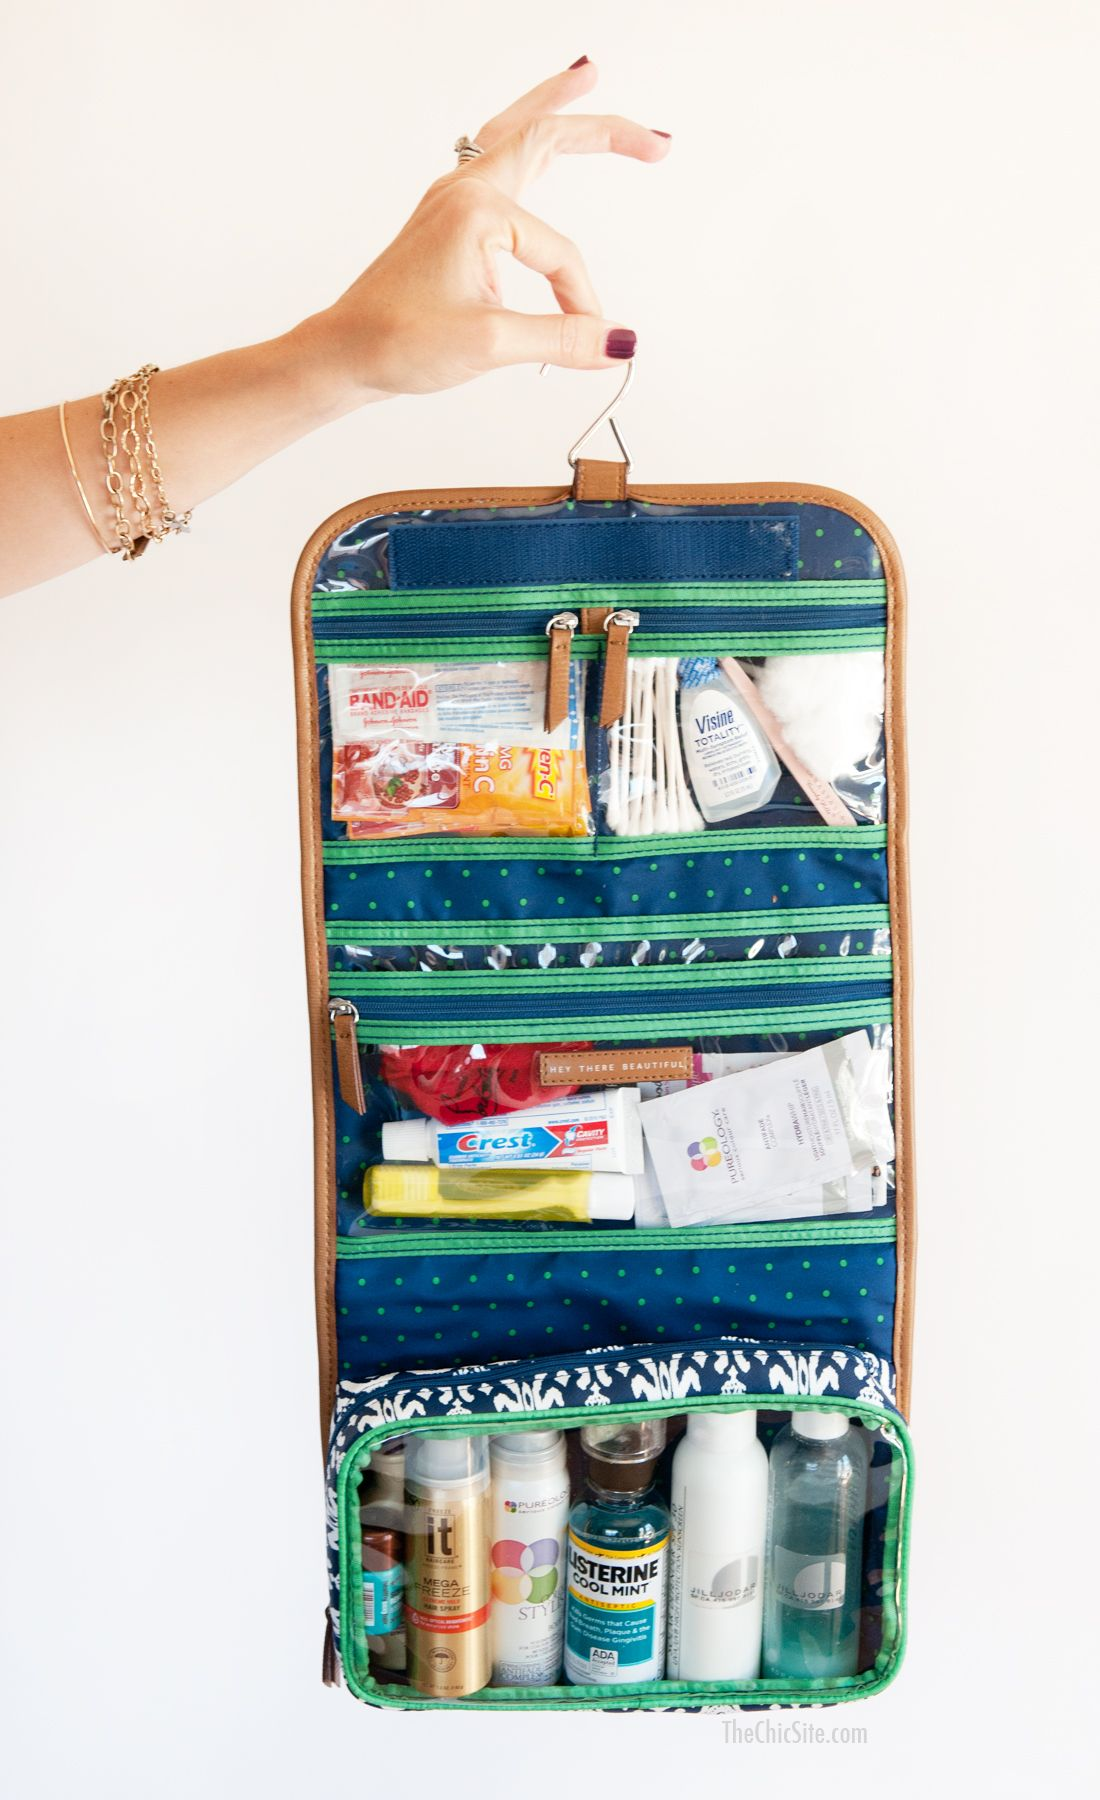 Stella and Dot Toiletry Bag ~ What to pack in your overnight bag for traveling http://thechicsite.com/2014/07/21/toiletry-bag BUY NOW at www.stelladot.com/chantallevy